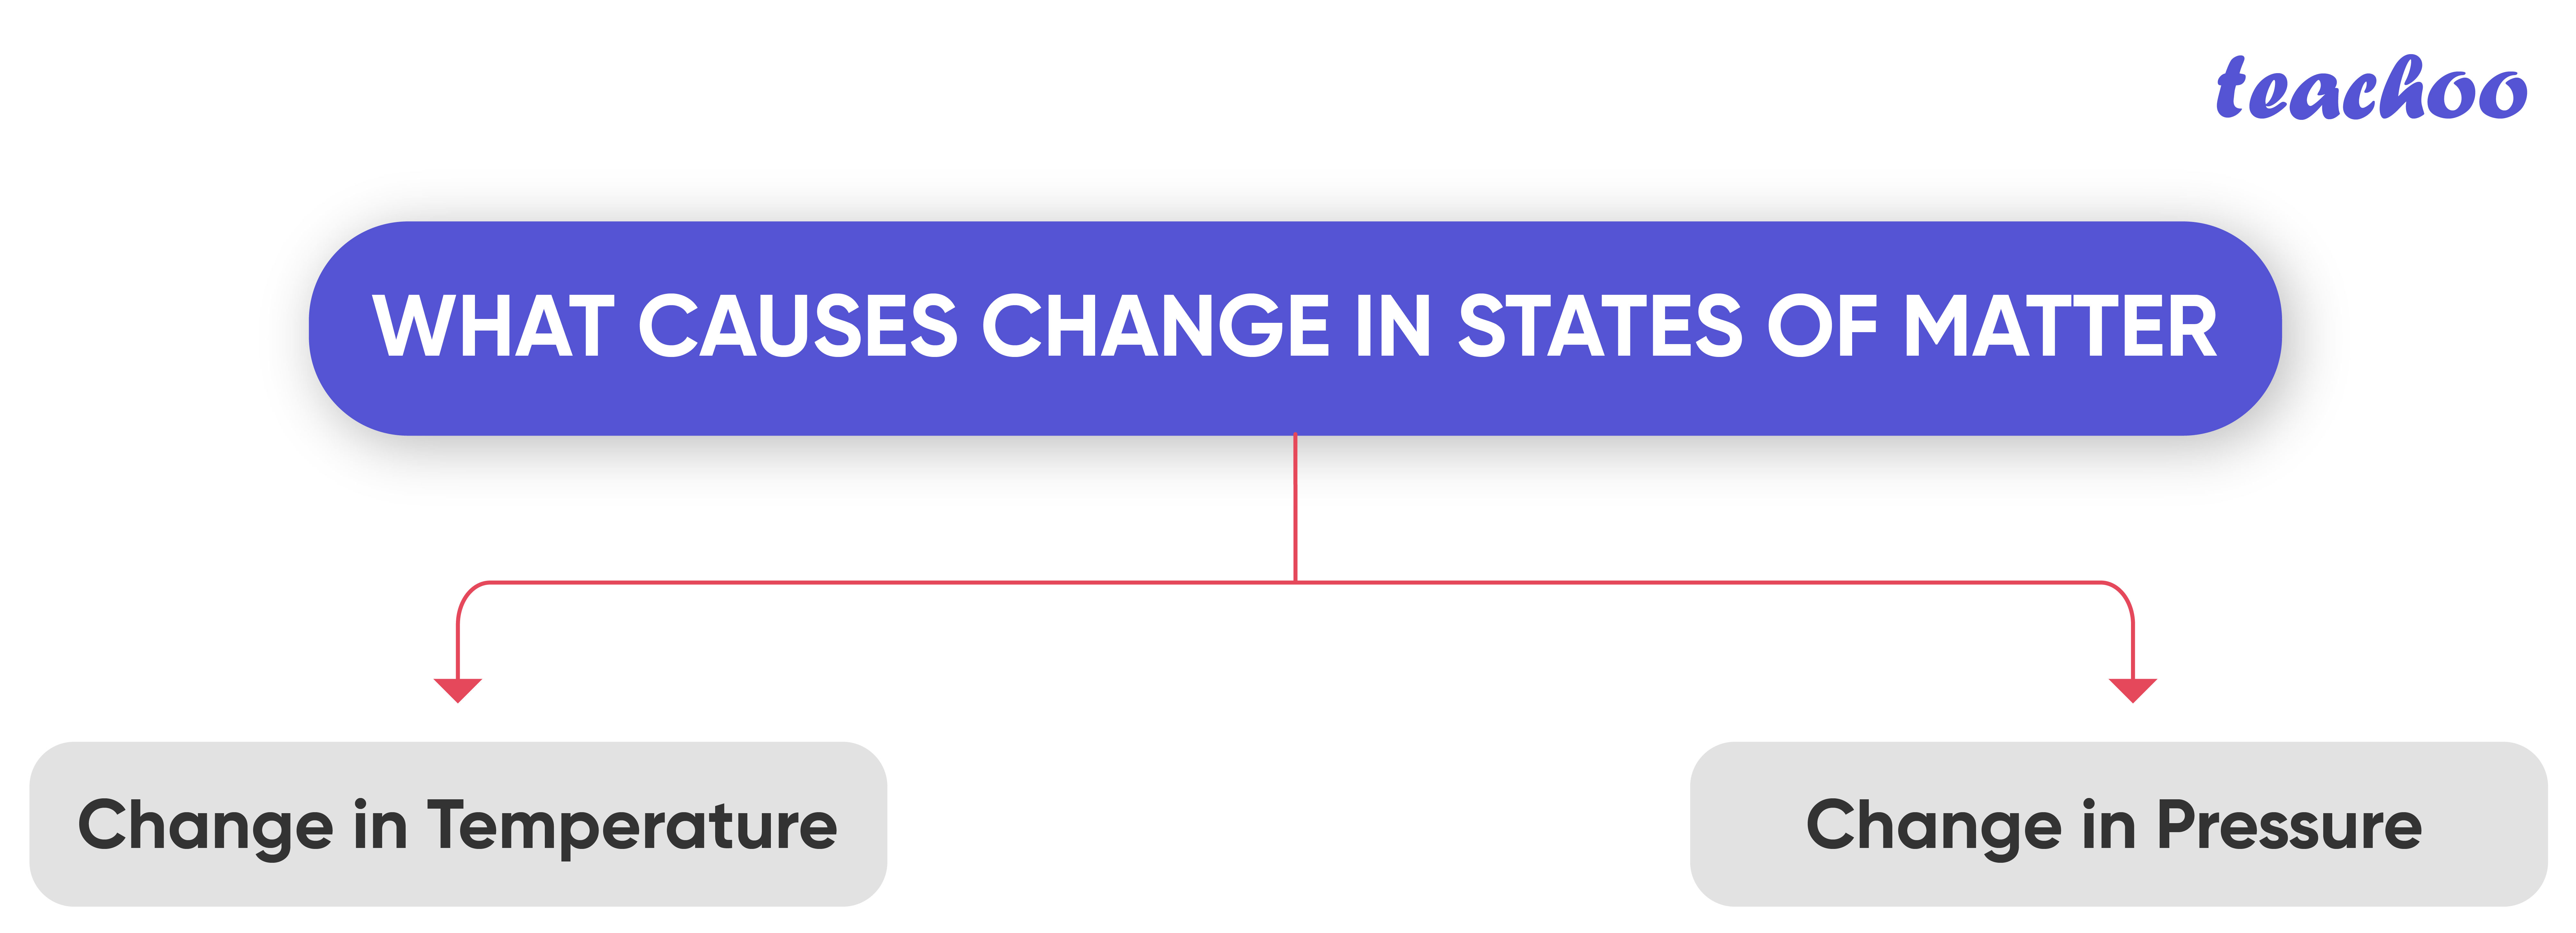 What causes change in states of matter-Teachoo-01.jpg